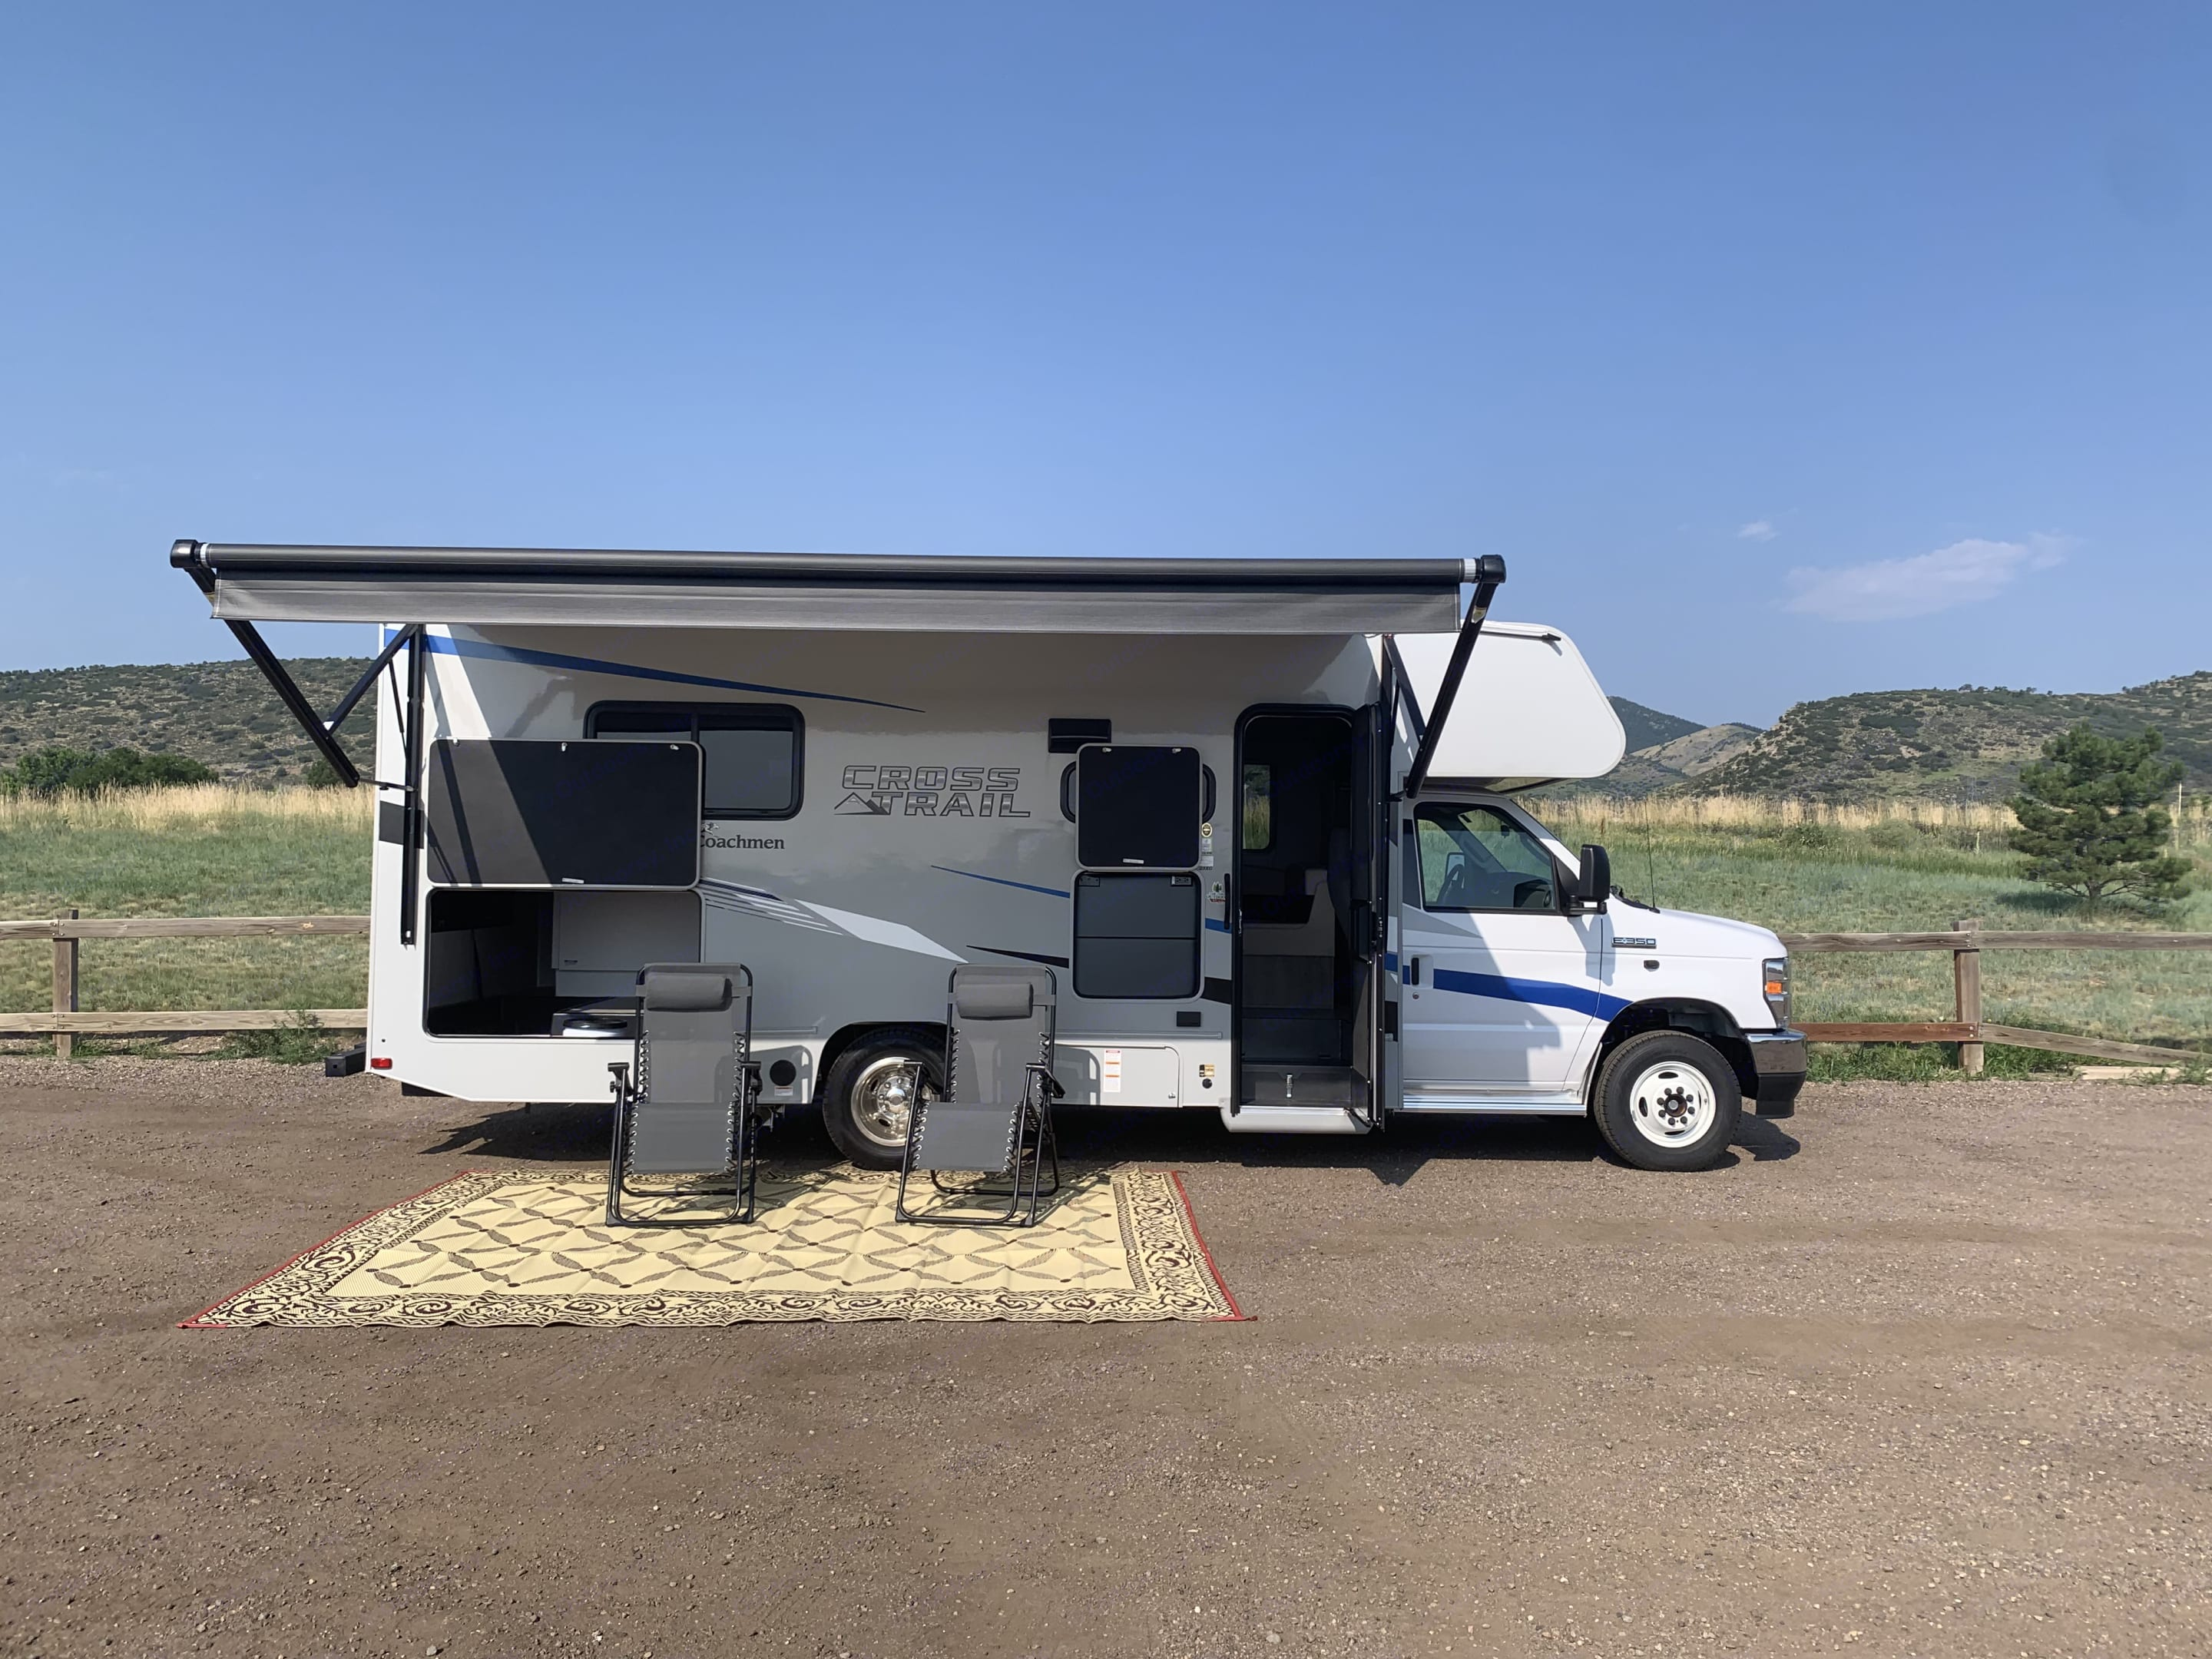 Powered awning allows you to take a break from the sun. Outdoor rug is included with rental. . Coachmen Cross Trail 2021